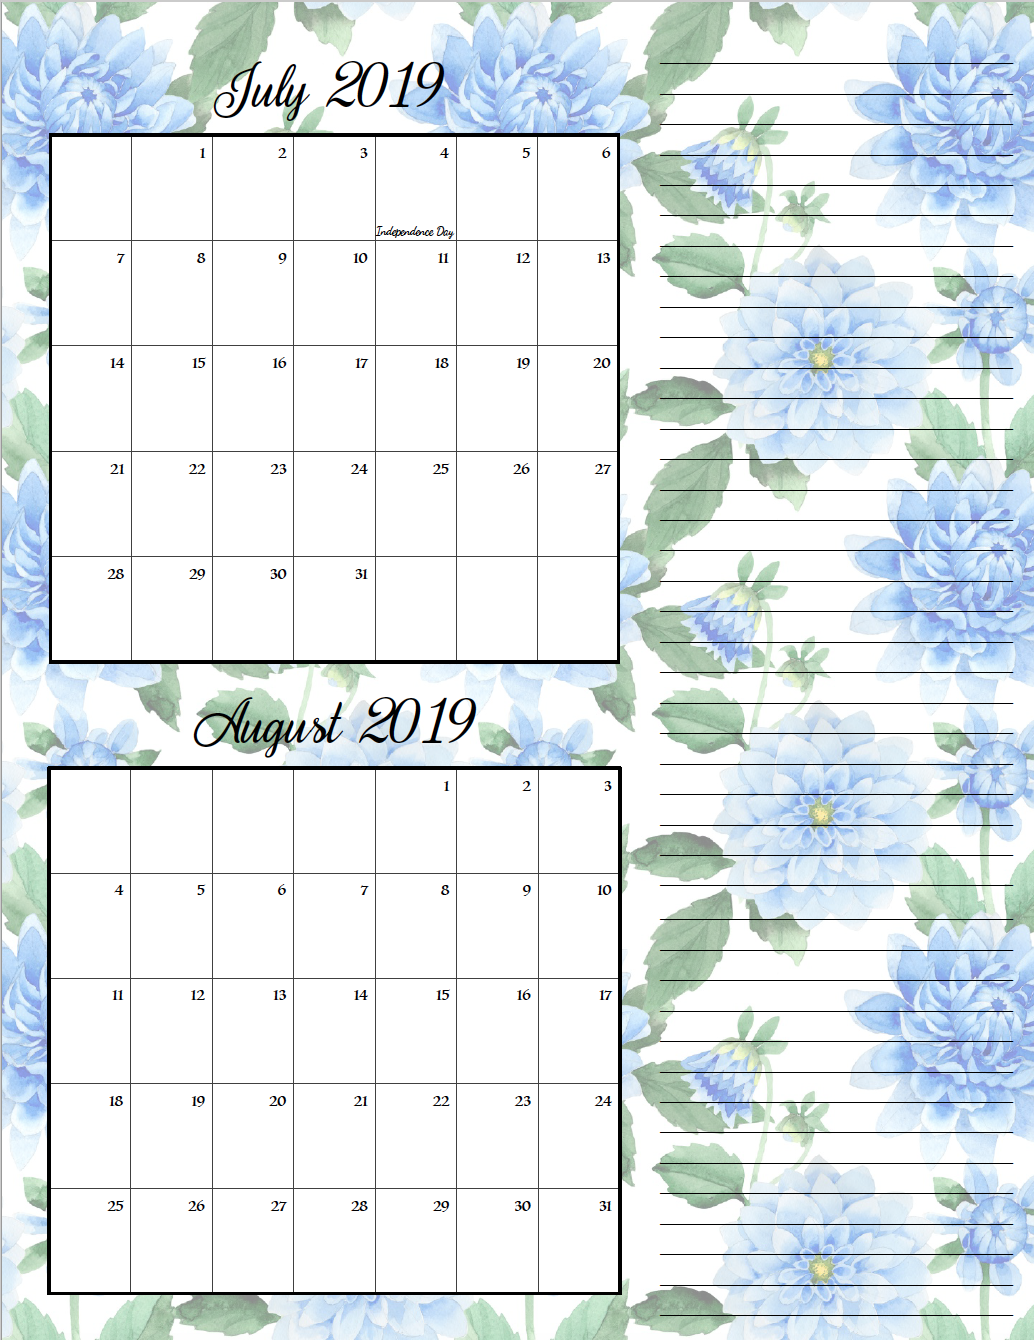 July/August. FREE Printable 2019 Bimonthly Calendars. Space for notes, holidays marked. 2 different designs! #free #freeprintable #printable #calendar #freecalendar #bimonthly #freeprintablecalendar